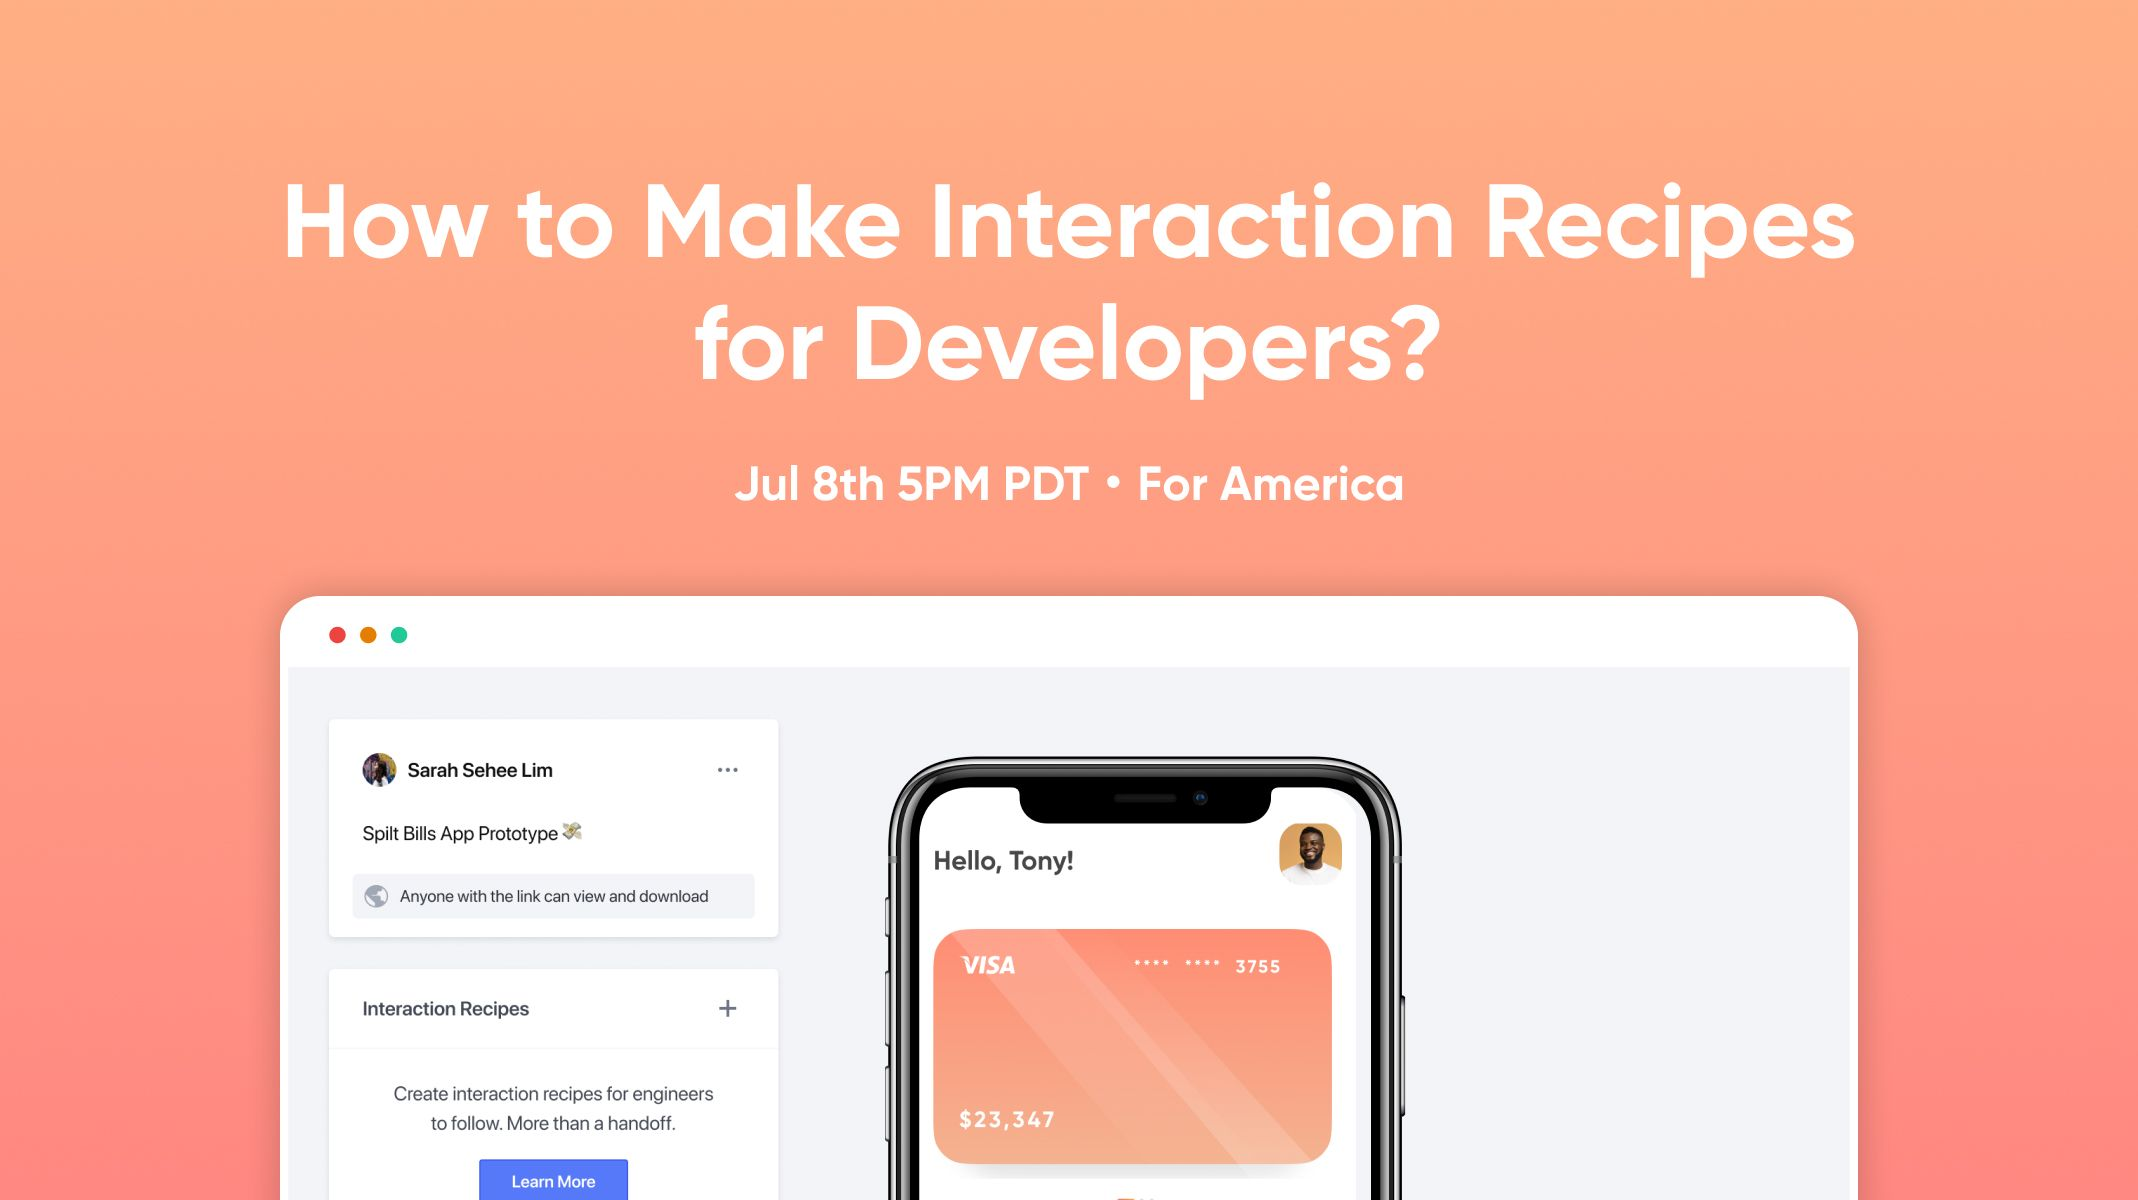 Make Interaction Recipes for Developers workshop thumbnail